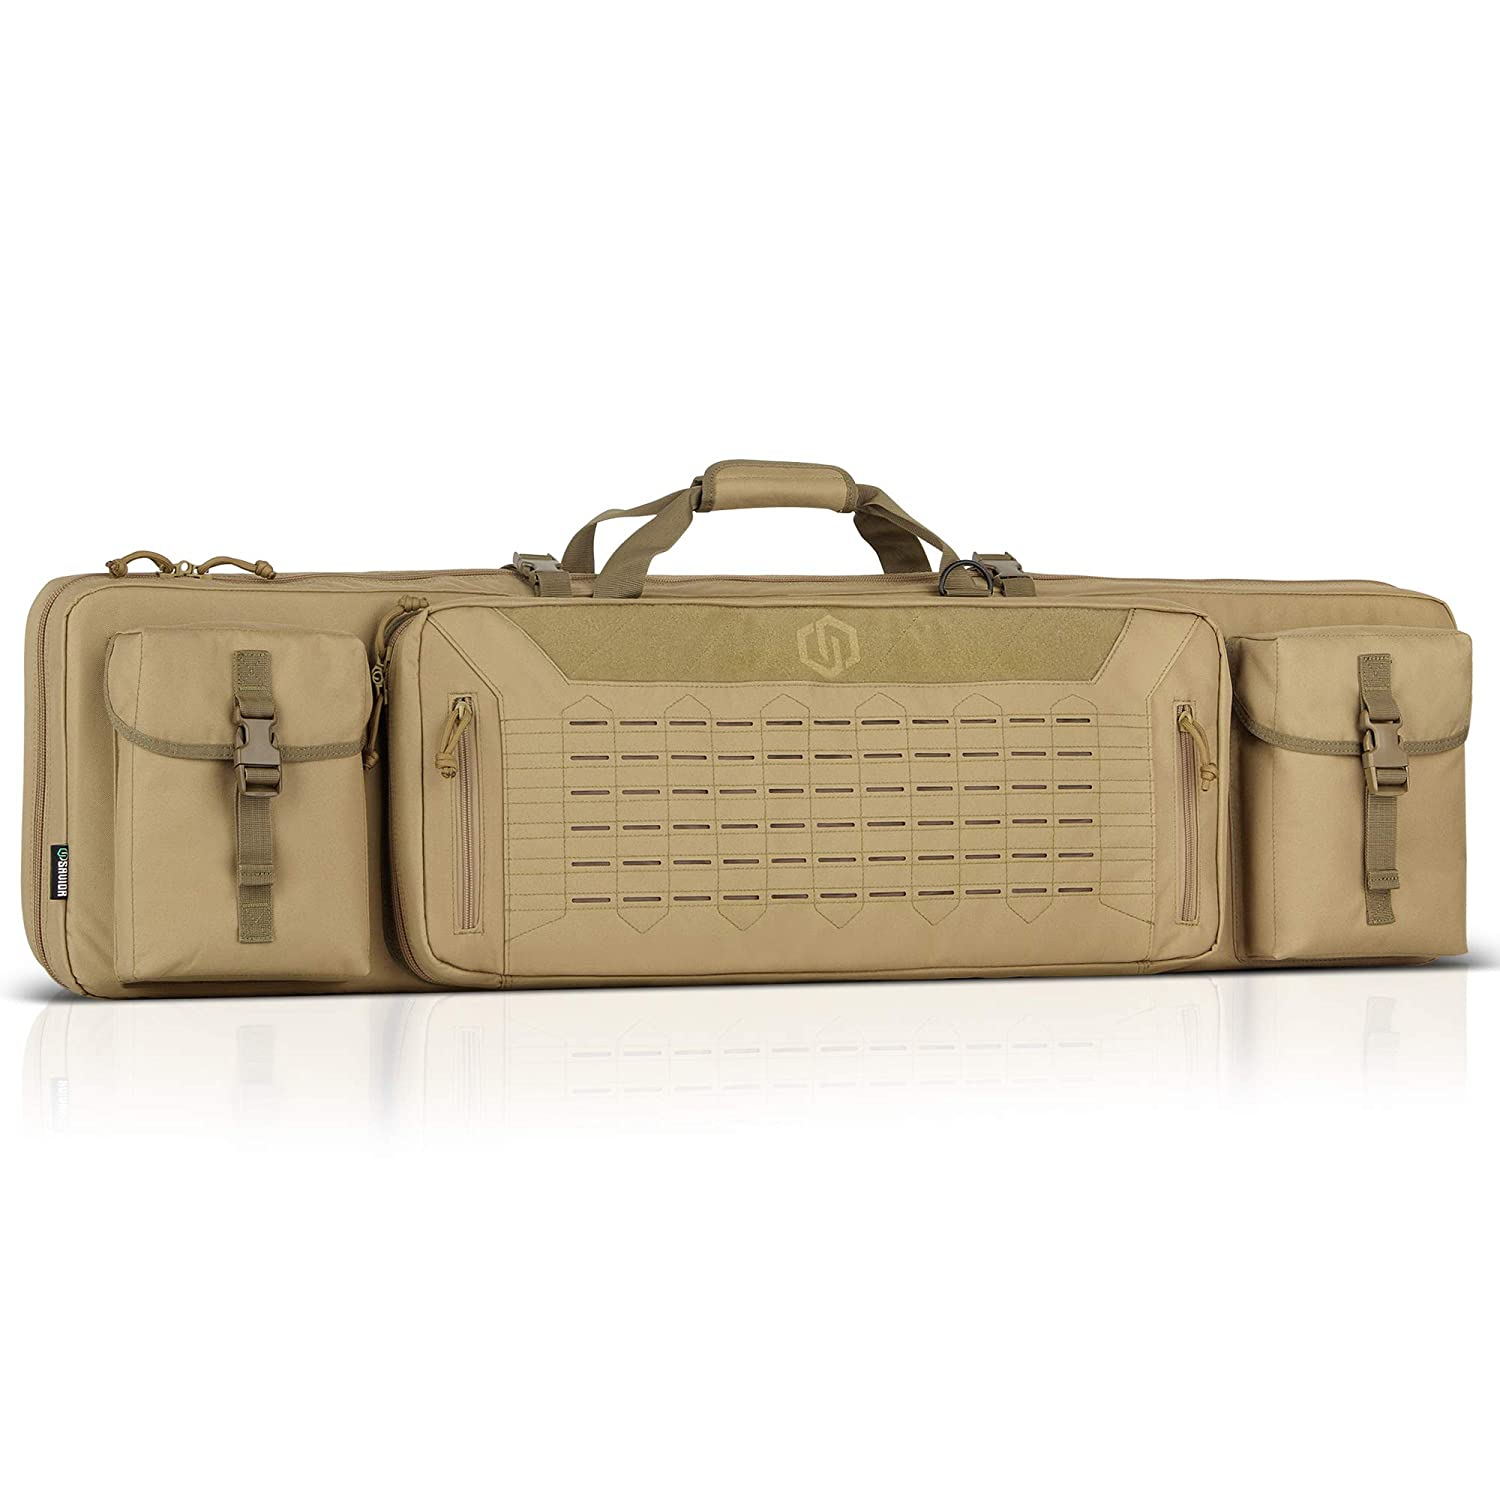 Top 10 Best Rifle Cases